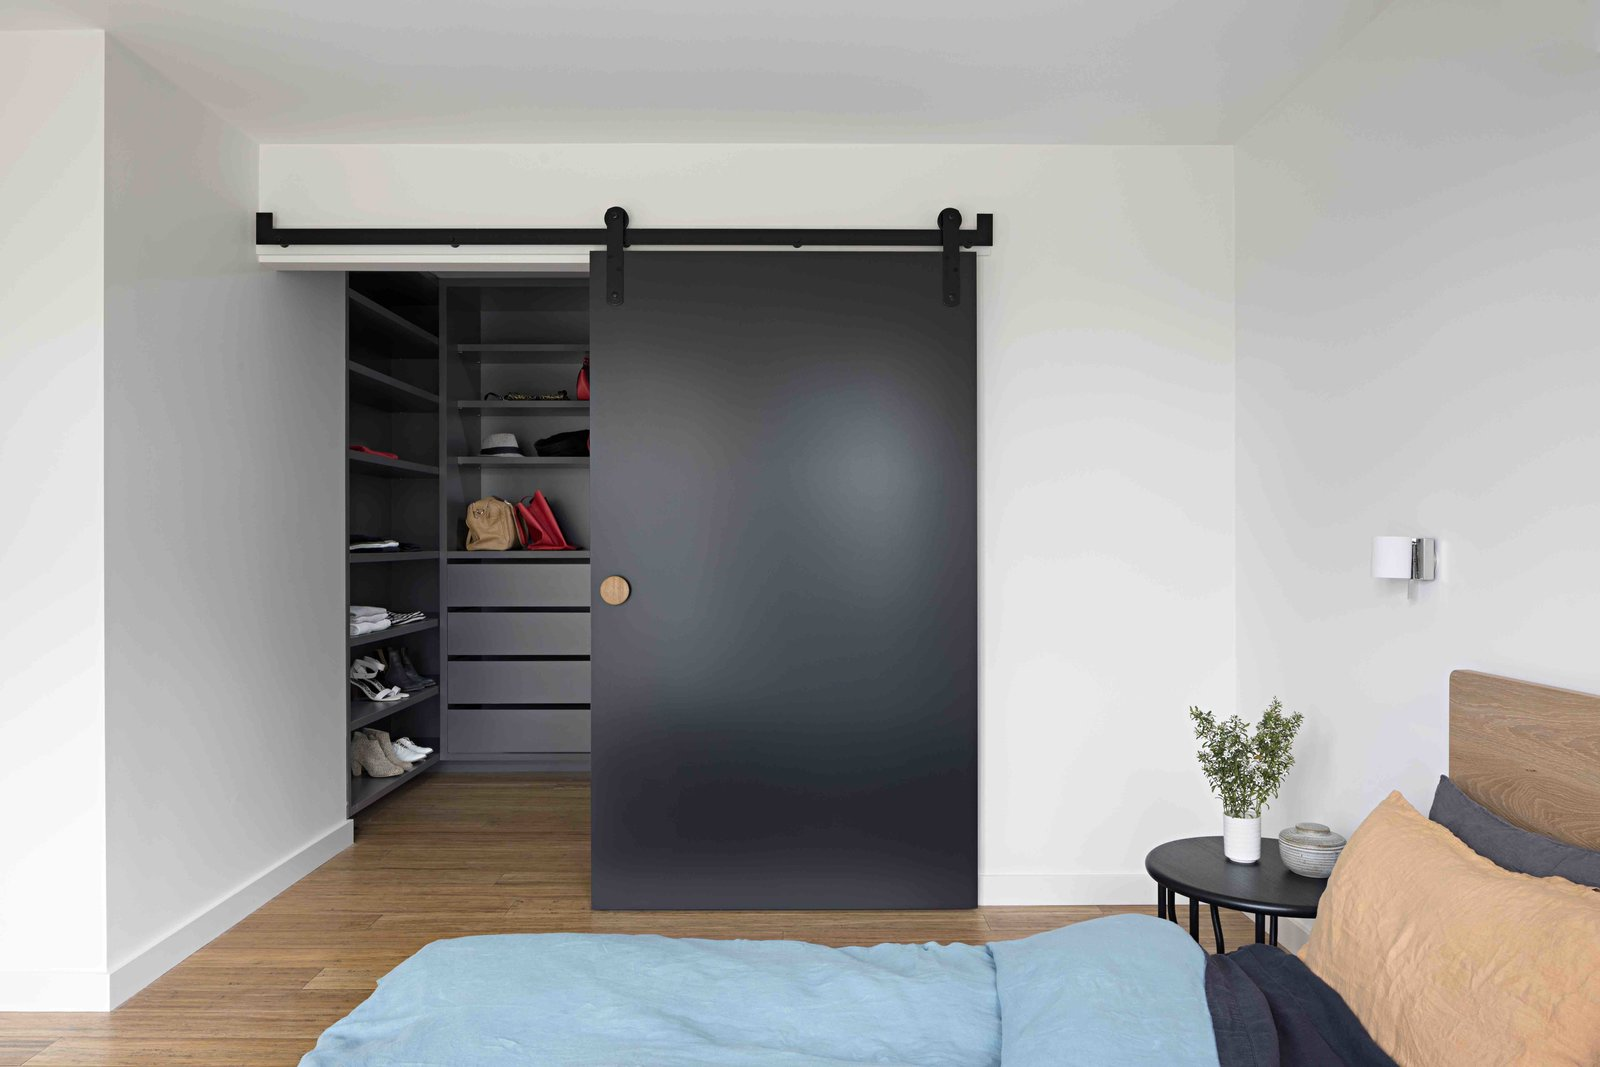 Bedroom, Night Stands, Storage, Shelves, Wall Lighting, and Medium Hardwood Floor  Photo 15 of 17 in A Remodel Turns a Dark and Choppy House in Melbourne Into a Bright, Flexible Family Home